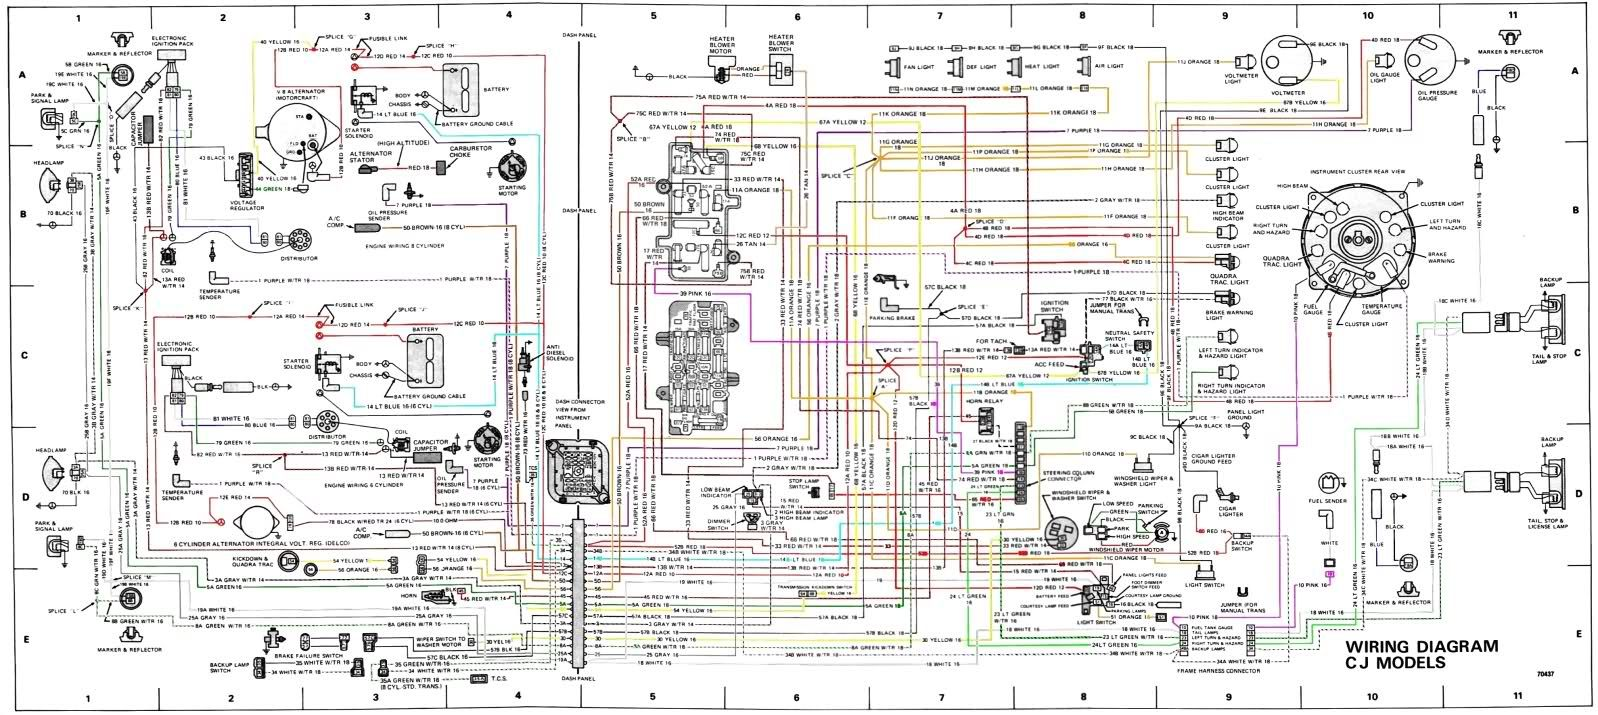 cj jeep wire harness diagram general wiring diagram information u2022 rh ethosguitars co uk